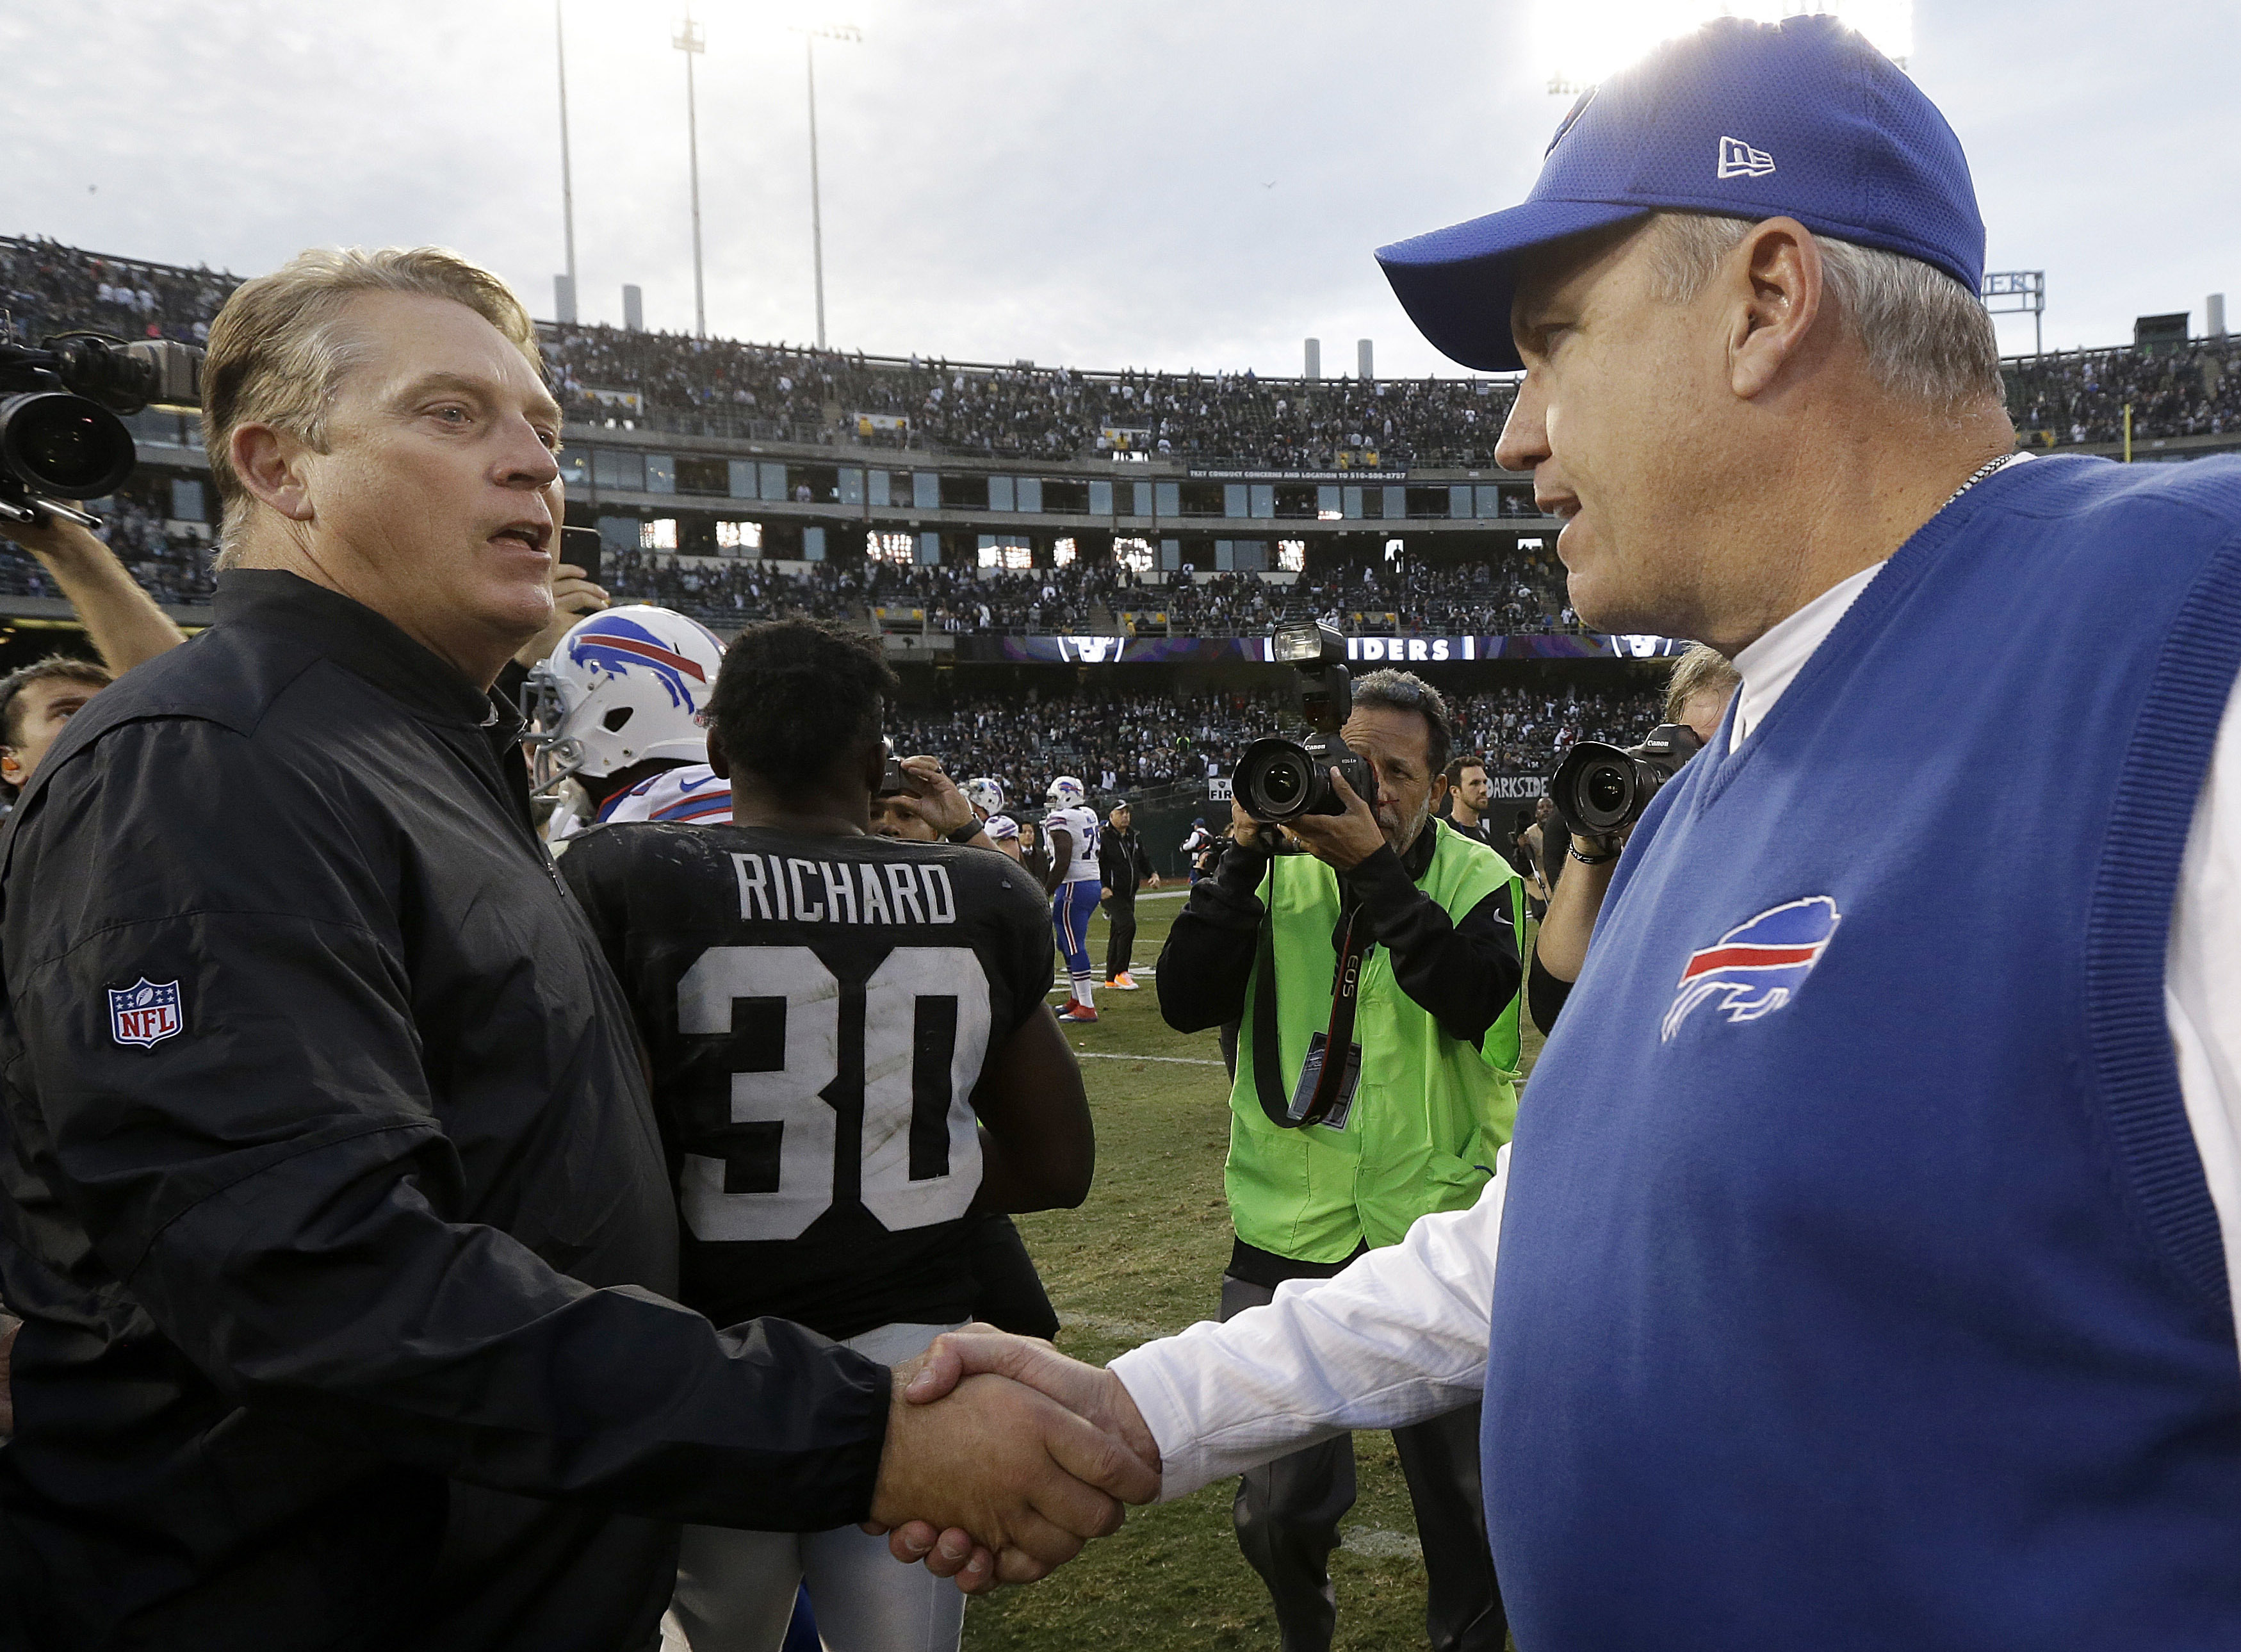 Oakland Raiders head coach Jack Del Rio, left, greets Buffalo Bills head coach Rex Ryan after an NFL football game in Oakland, Calif., Sunday, Dec. 4, 2016. The Raiders won 38-24. (AP Photo/Ben Margot)